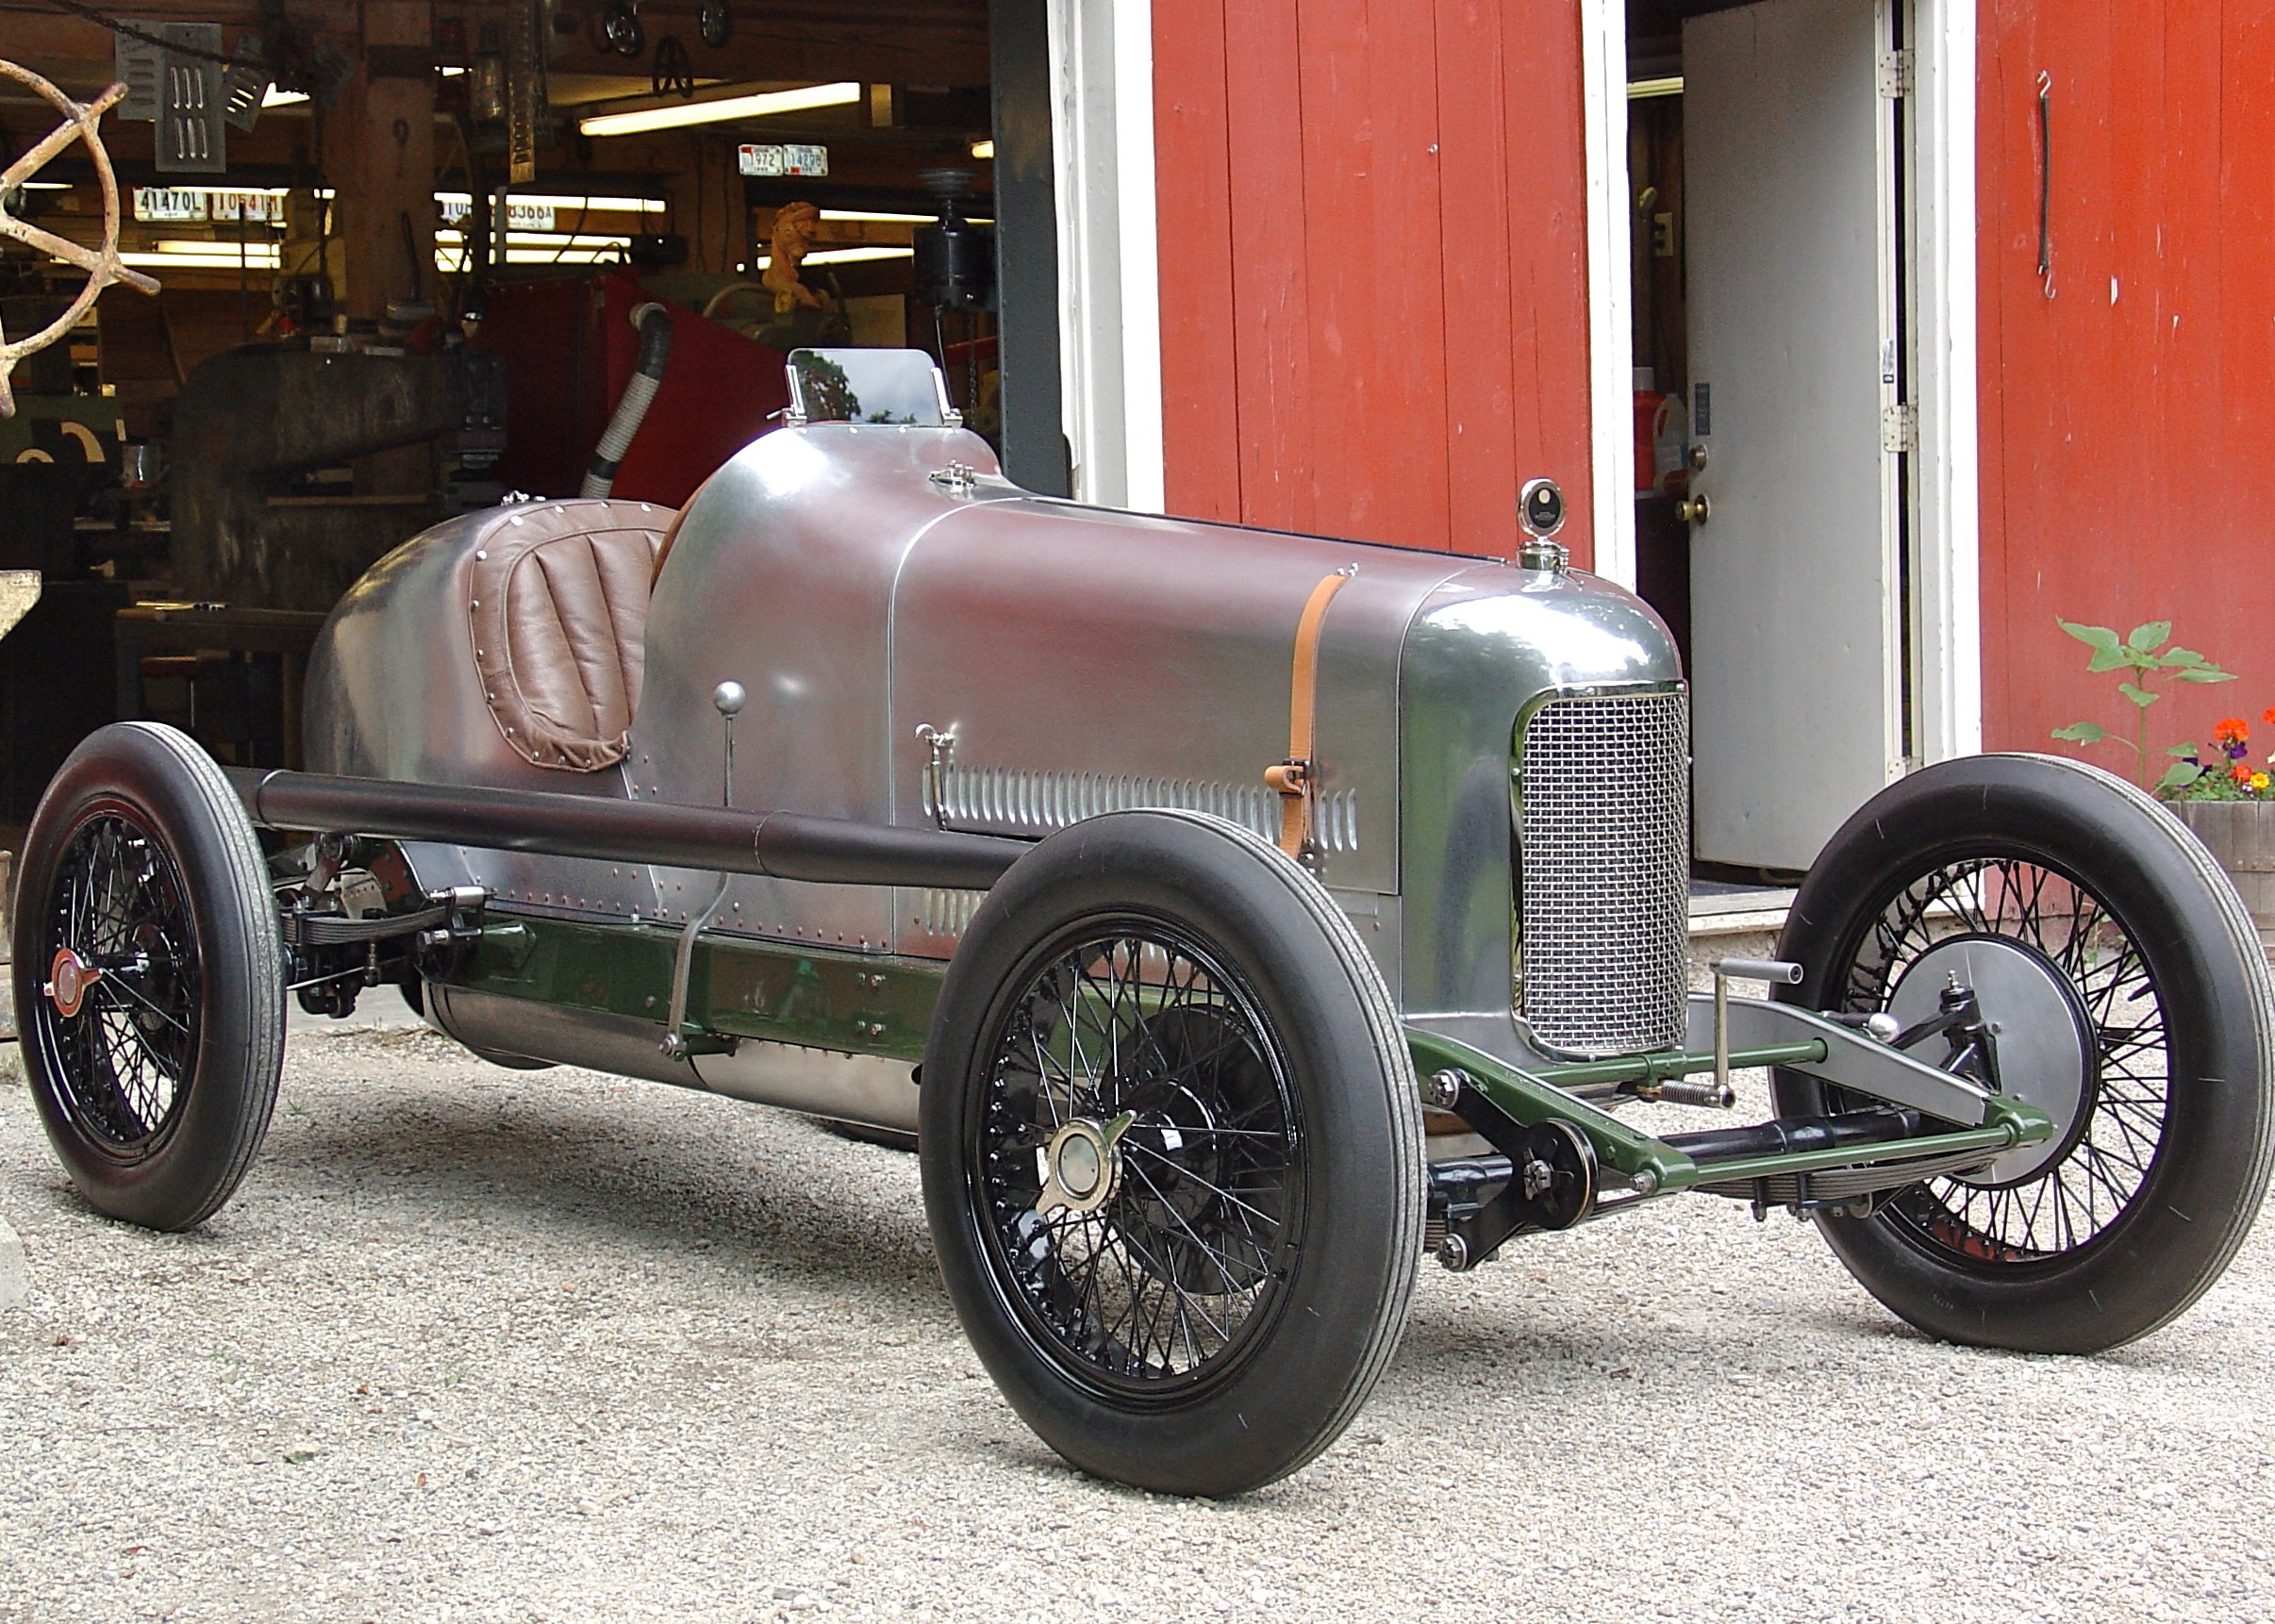 In 2005, Banker Wire was approached by Jerry Weeks of Metalsmith Inc. to assist in the restoration of a 1923 Miller 122 Supercharged Race Car.